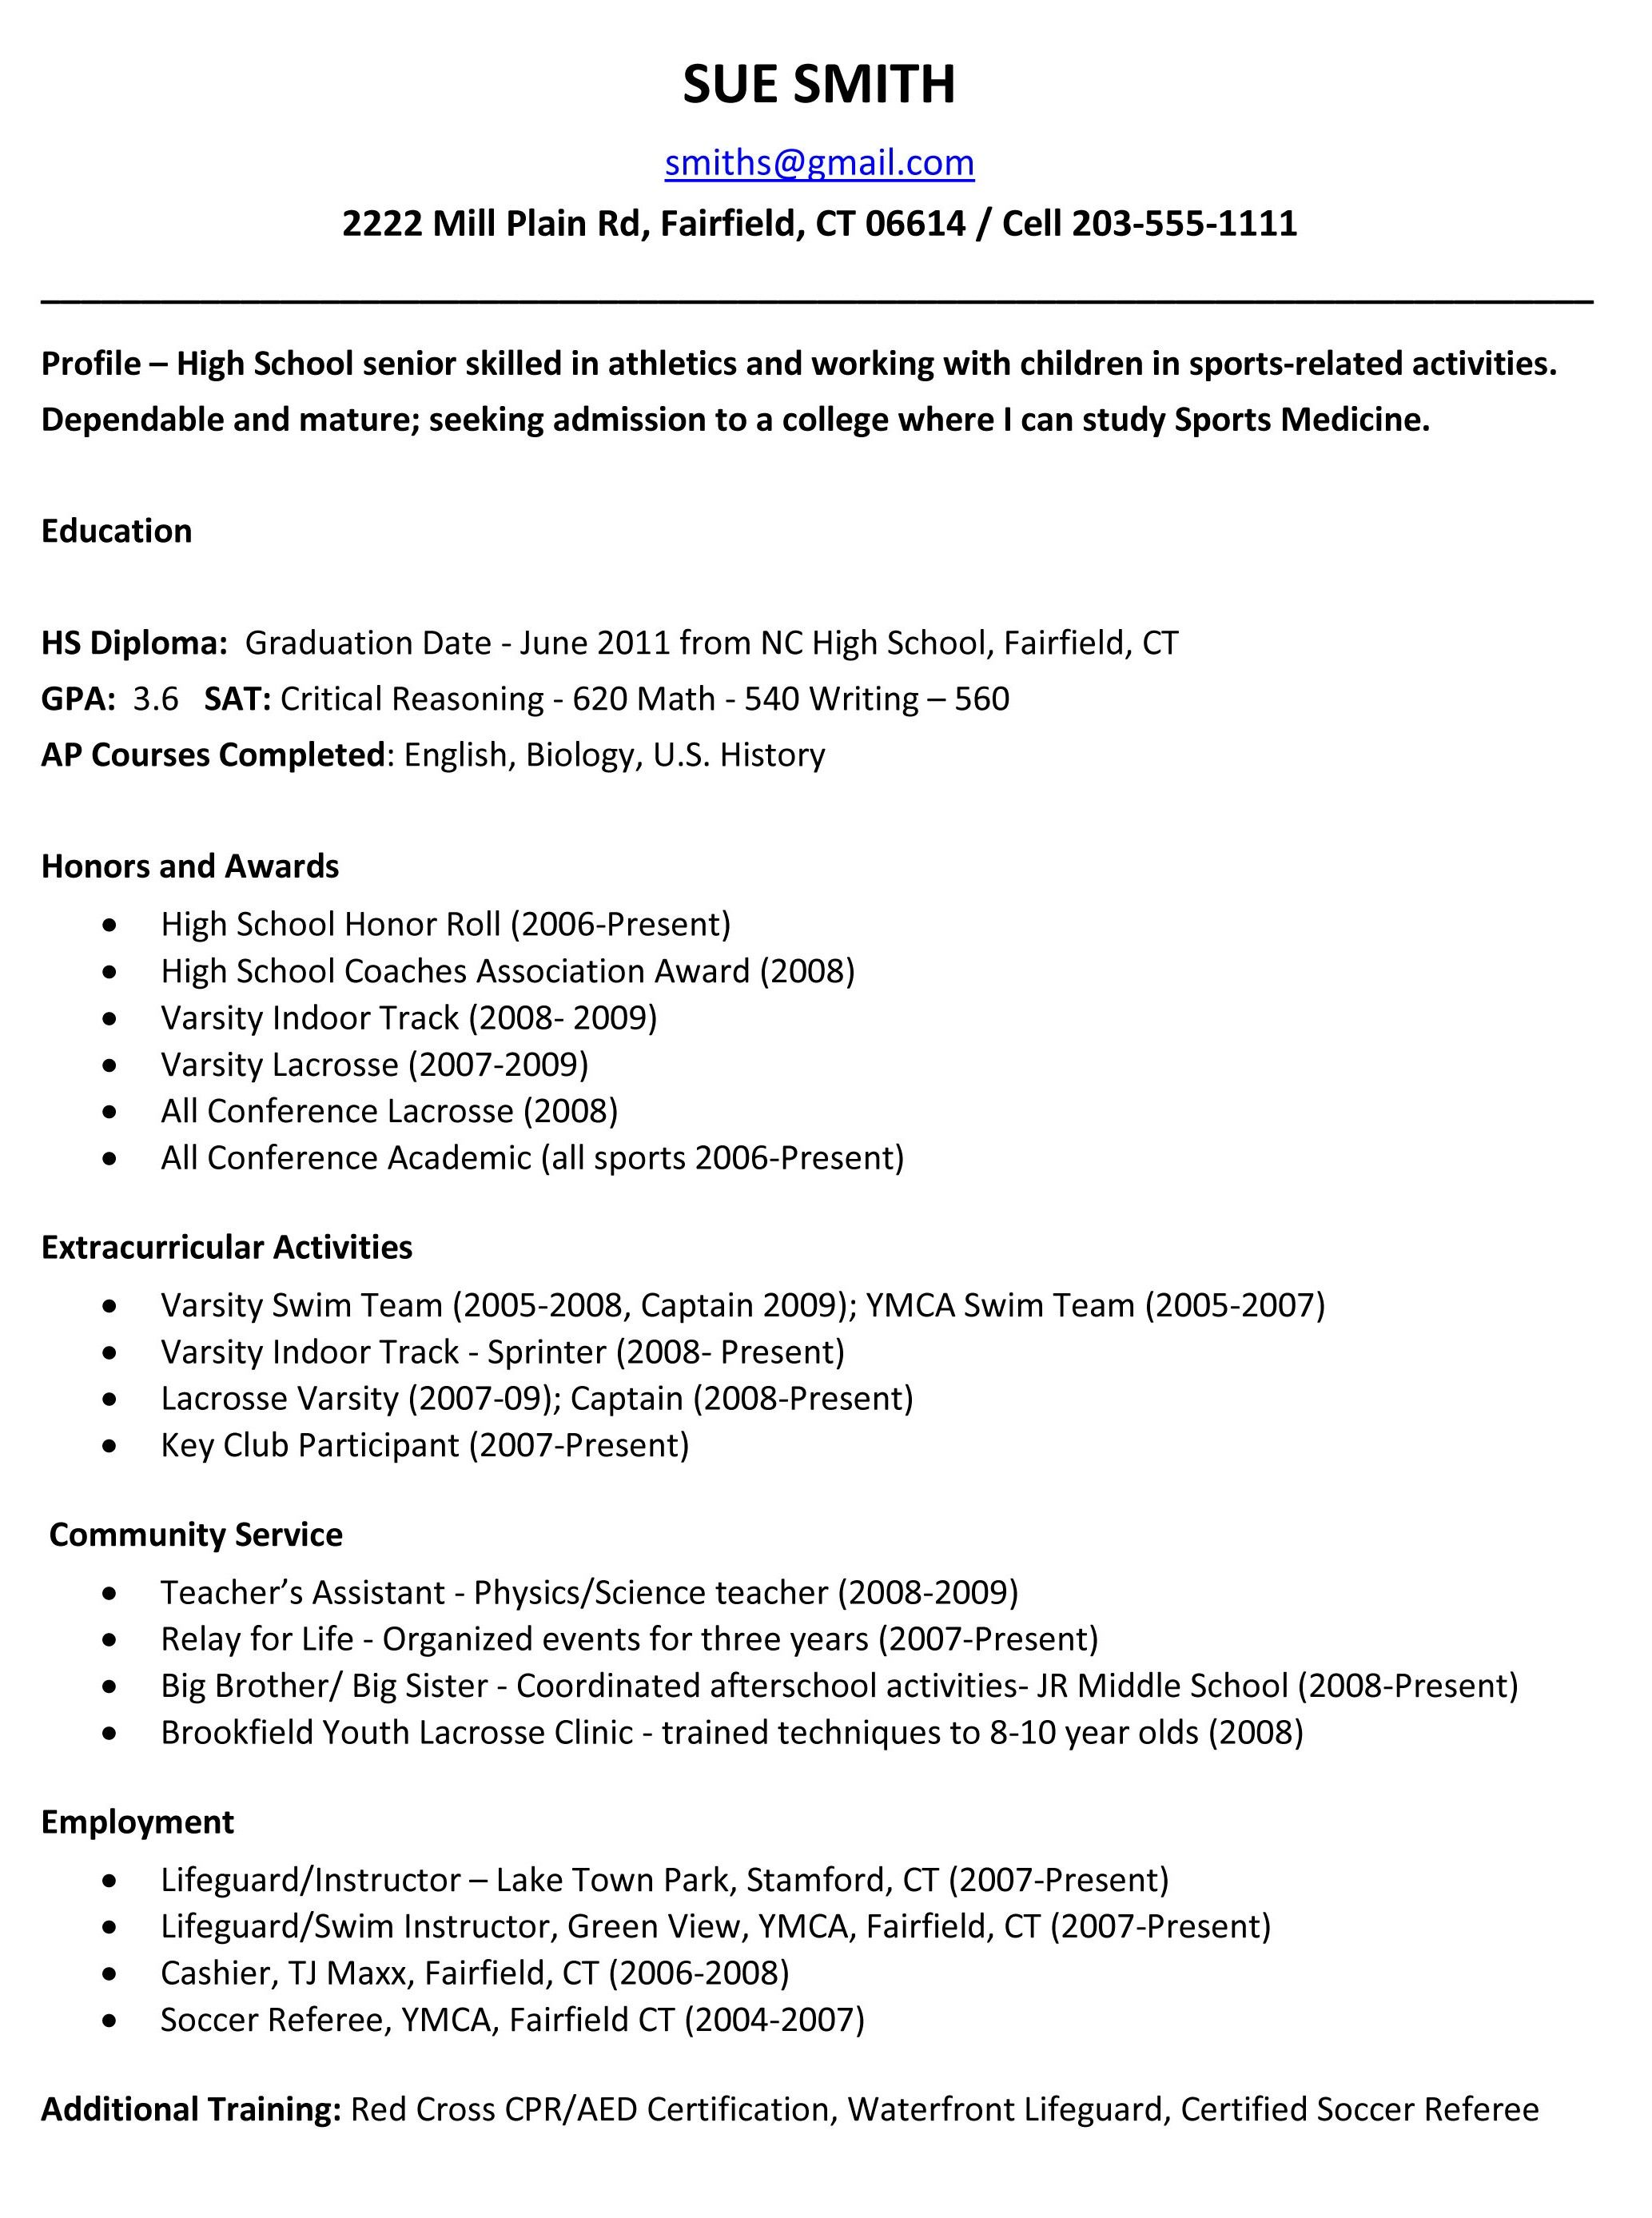 example resume for high school students for college applications school resume templateregularmidwesternerscom regularmidwesterners - How To Write A Resume For College Application